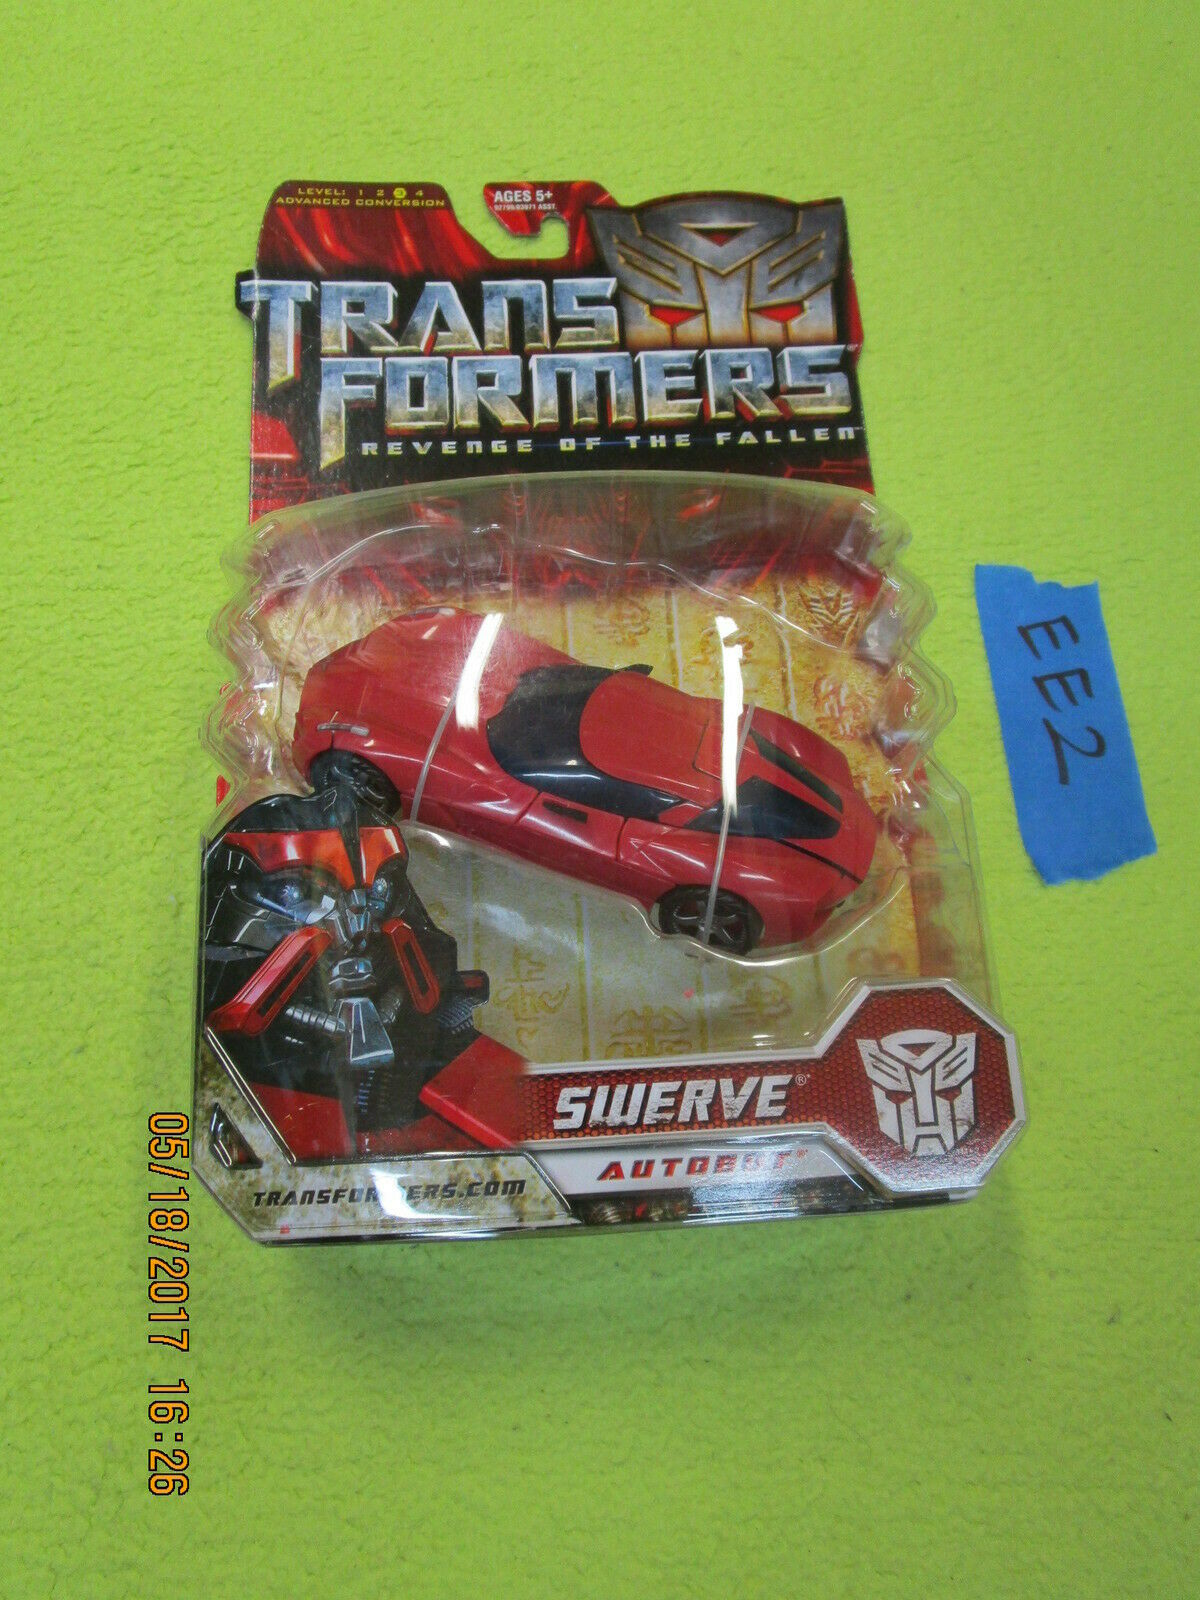 EE2_7 EE2_7 EE2_7 Transformers 2 Movie Lot redF SWERVE Revenge of the Fallen Deluxe MOSC 6085d3